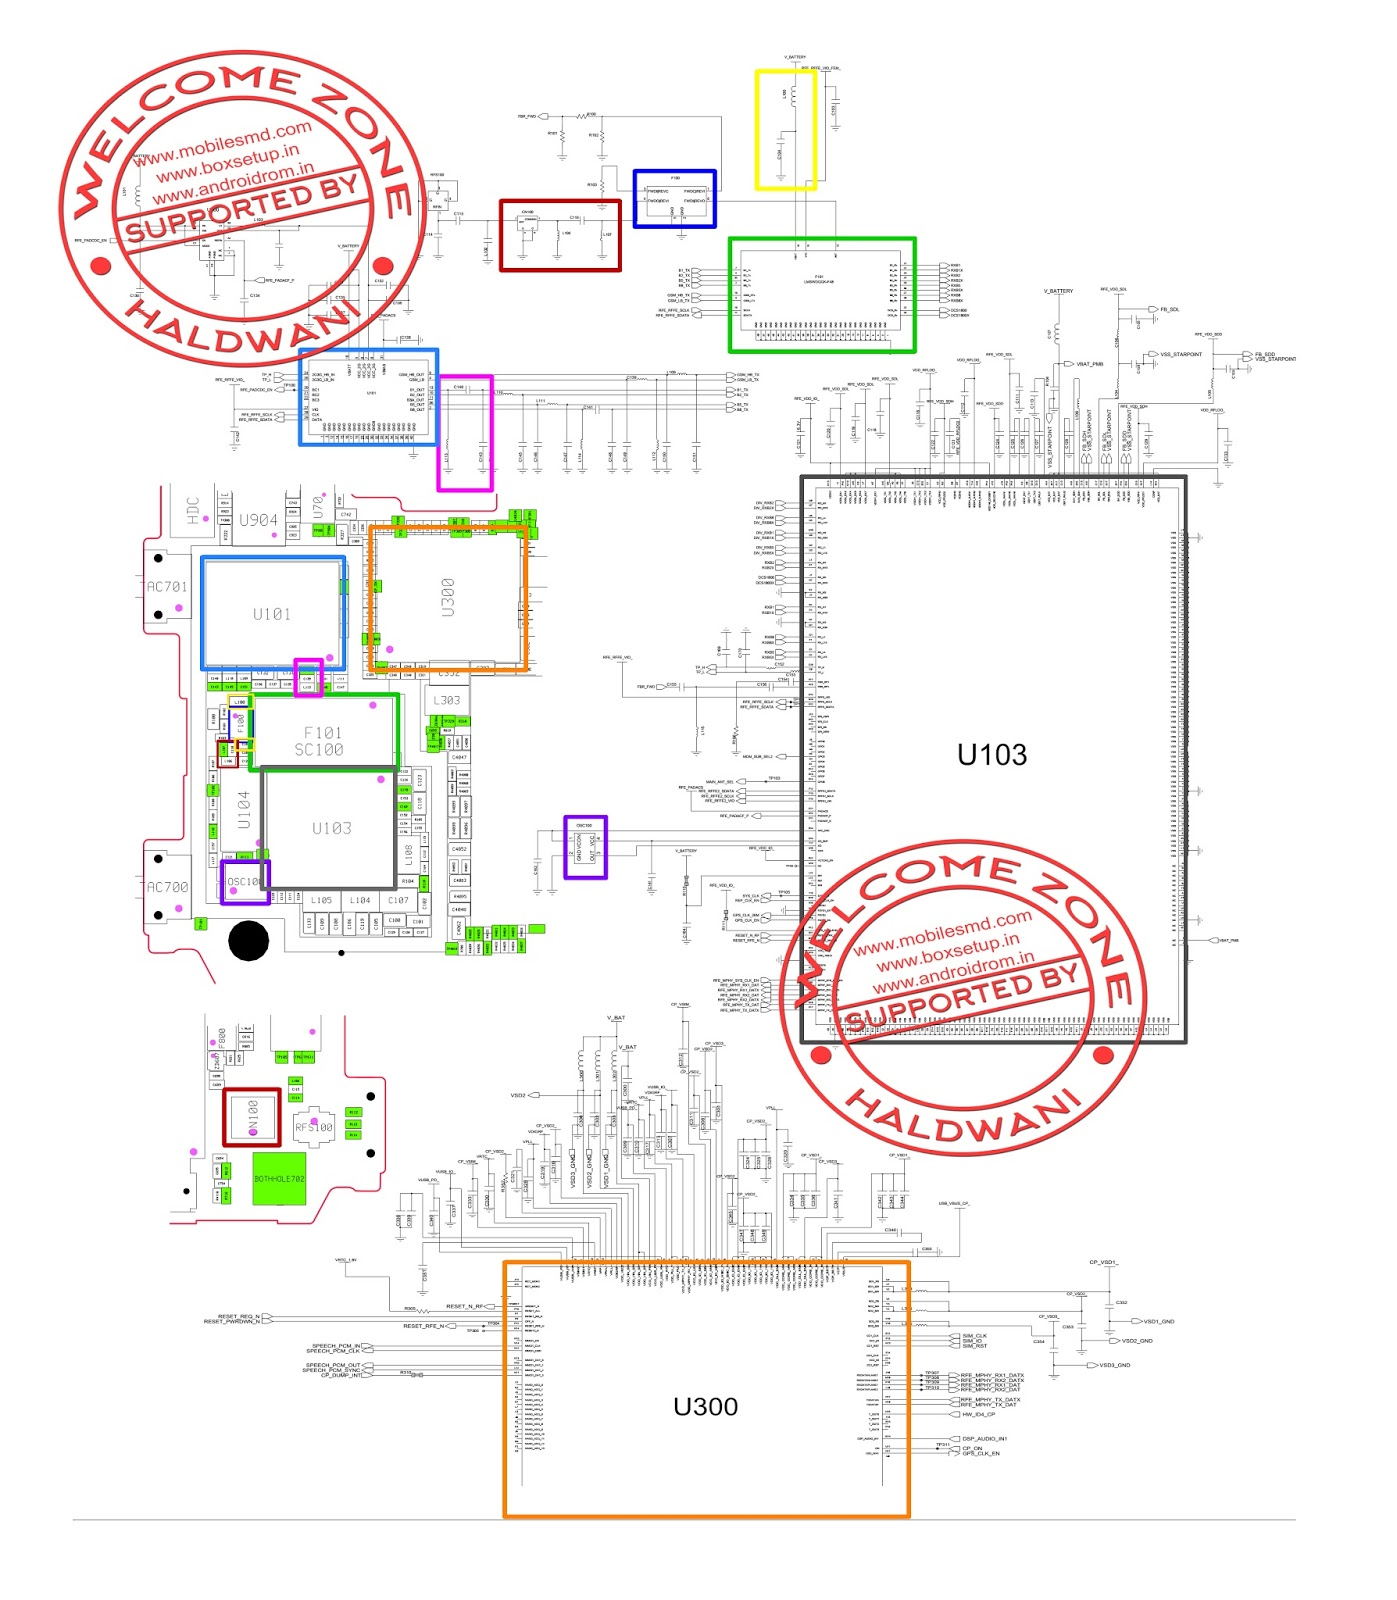 hight resolution of emg hsh wiring diagram otax vlx91 for hsh pick up diagram single coil pickup wiring diagram hsh stratocaster wiring diagram